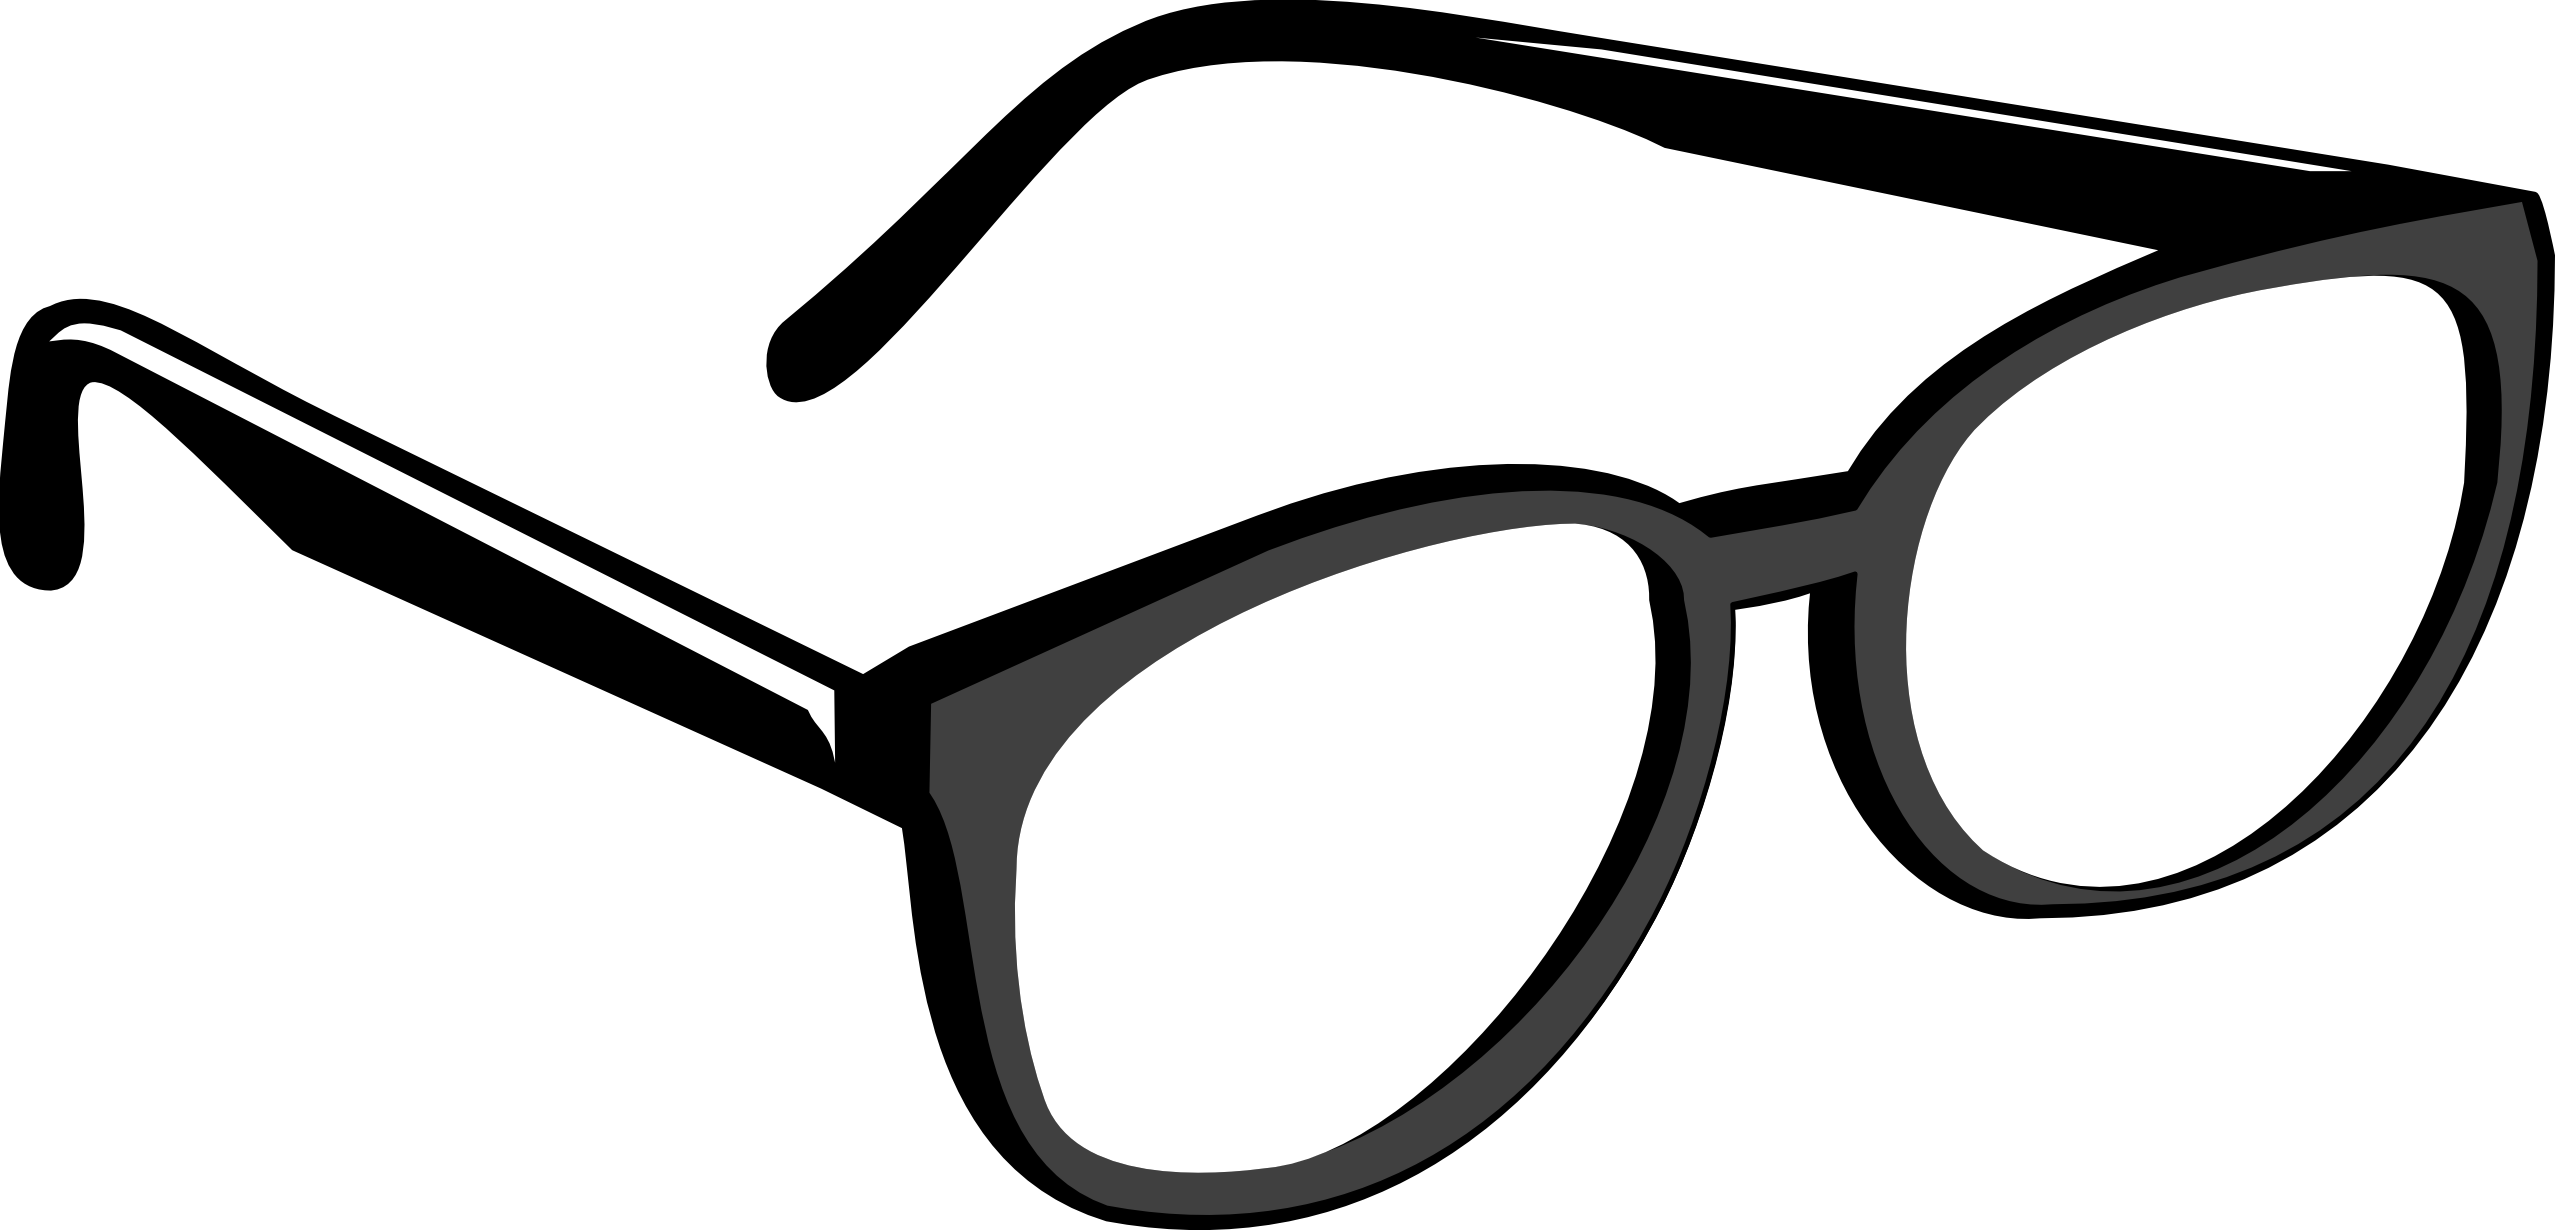 Glasses clipart #3, Download drawings